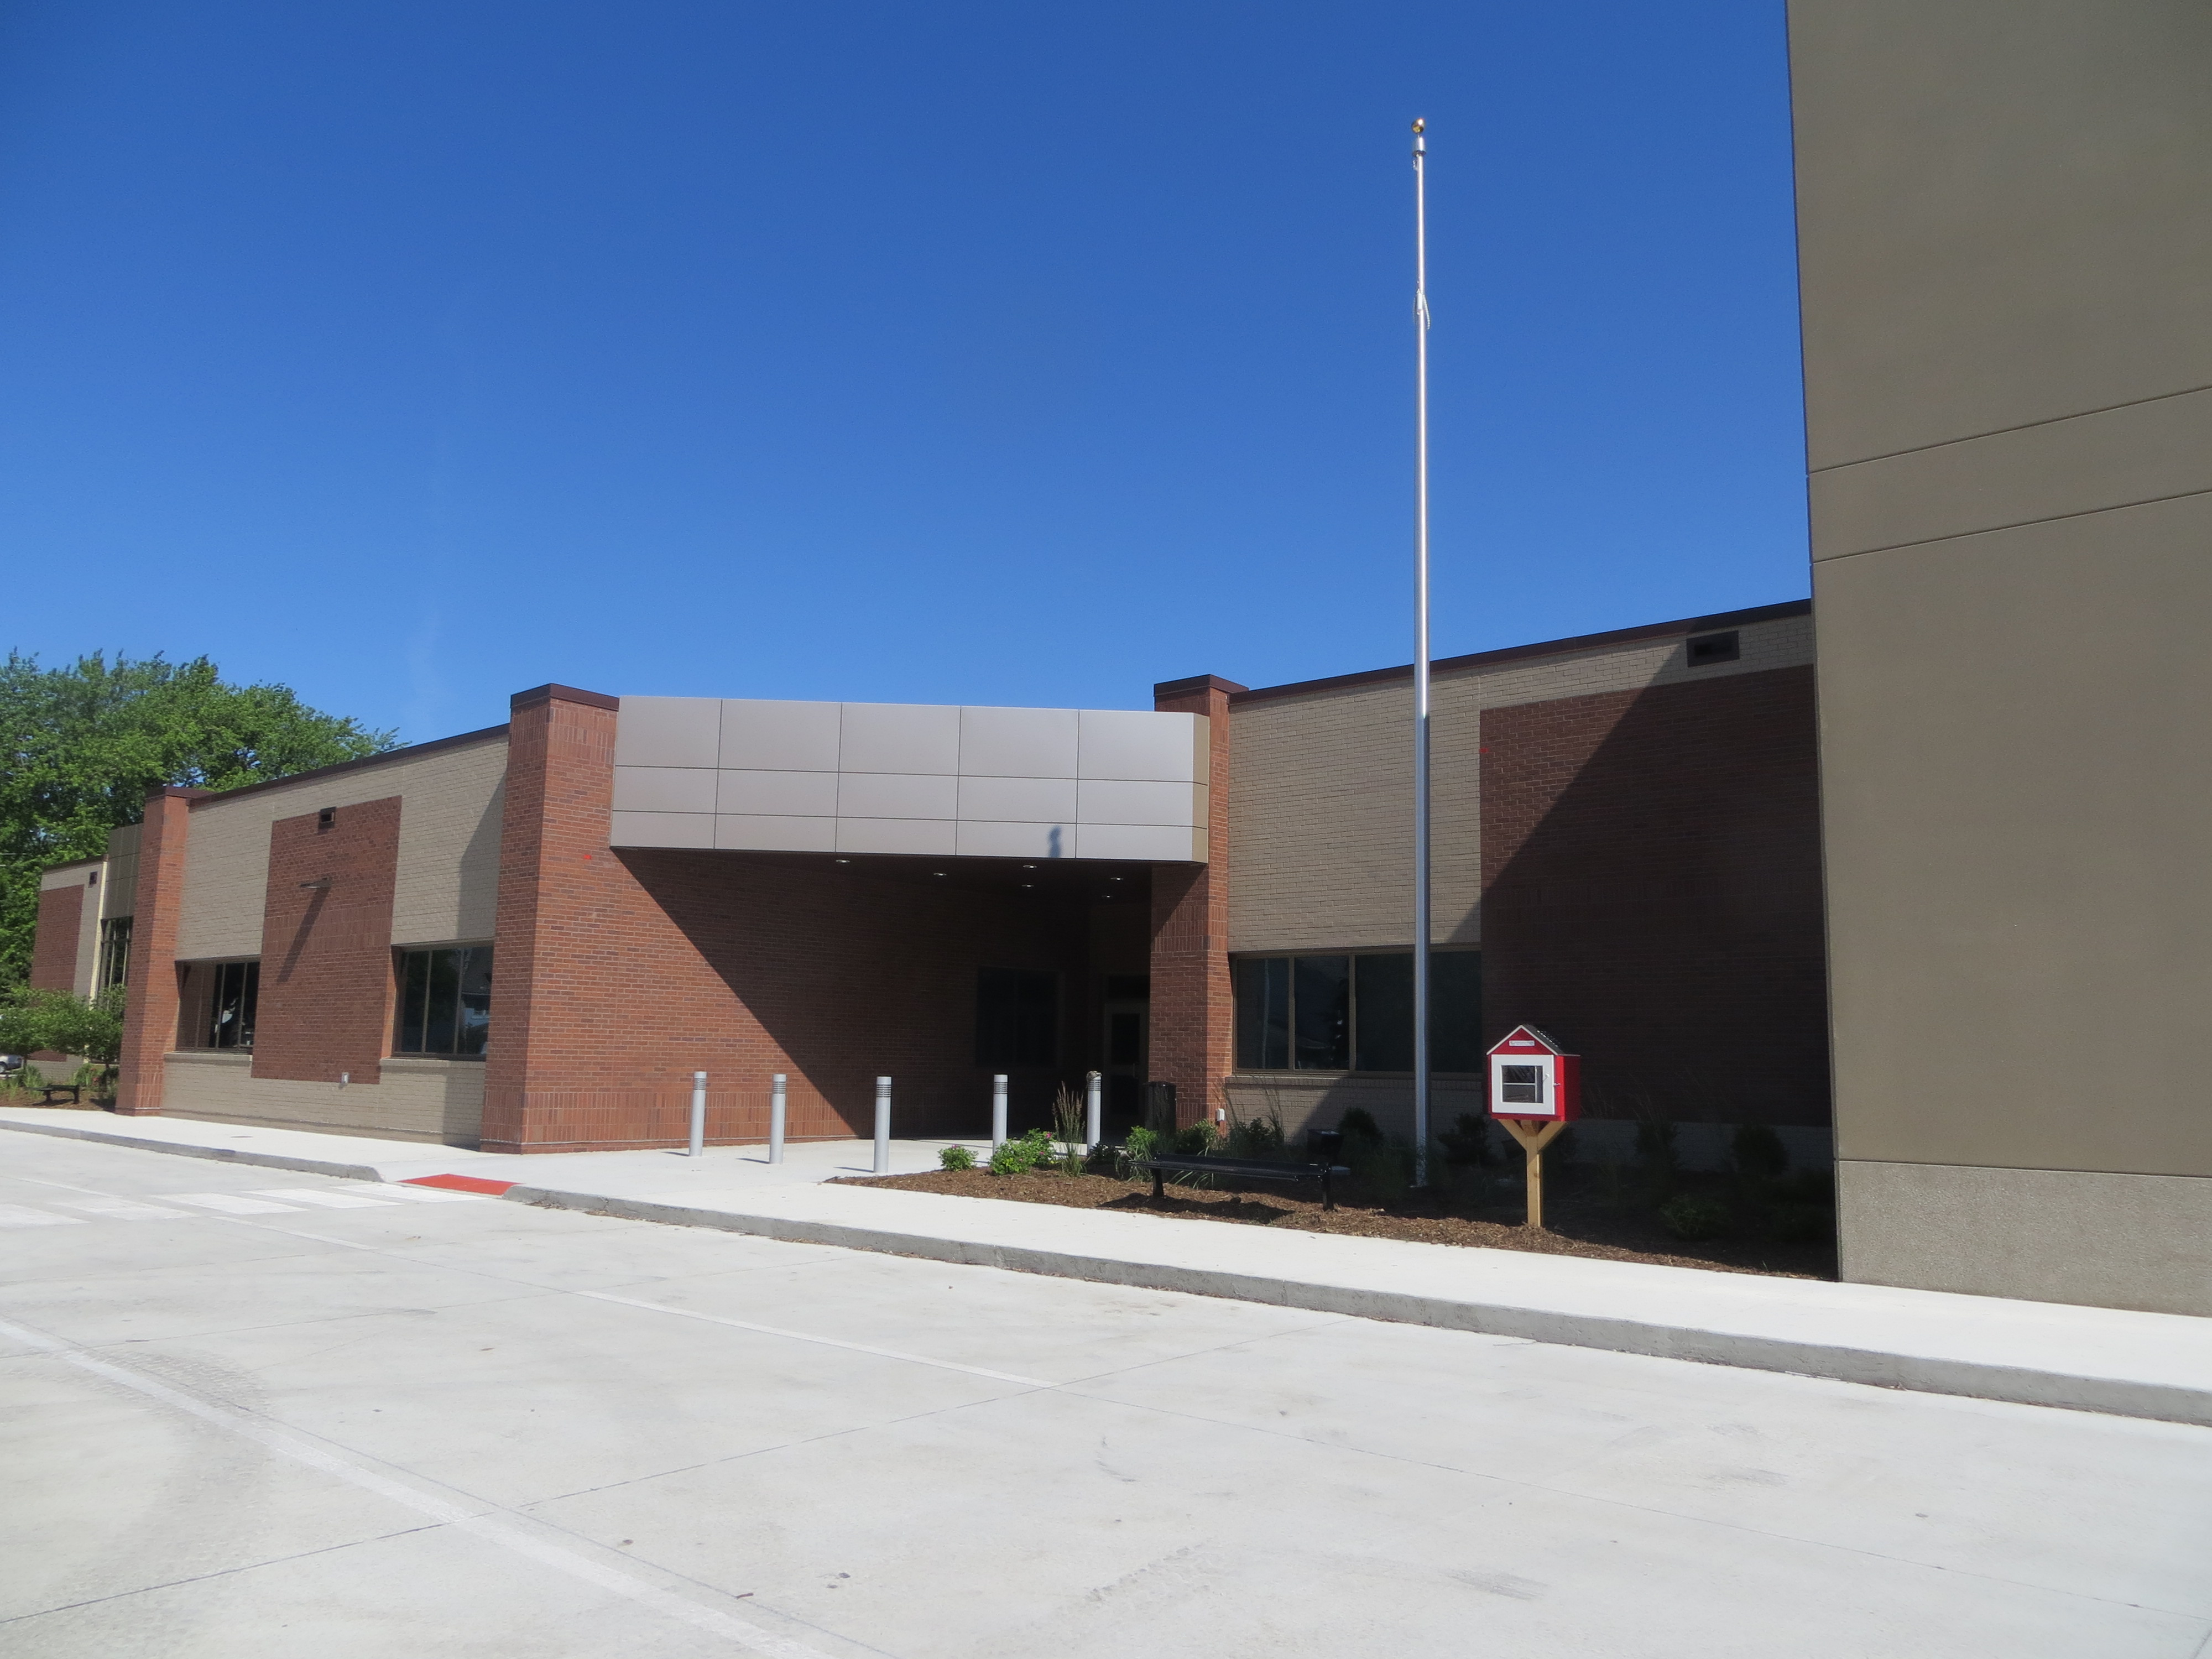 exterior of Duncombe Elementary